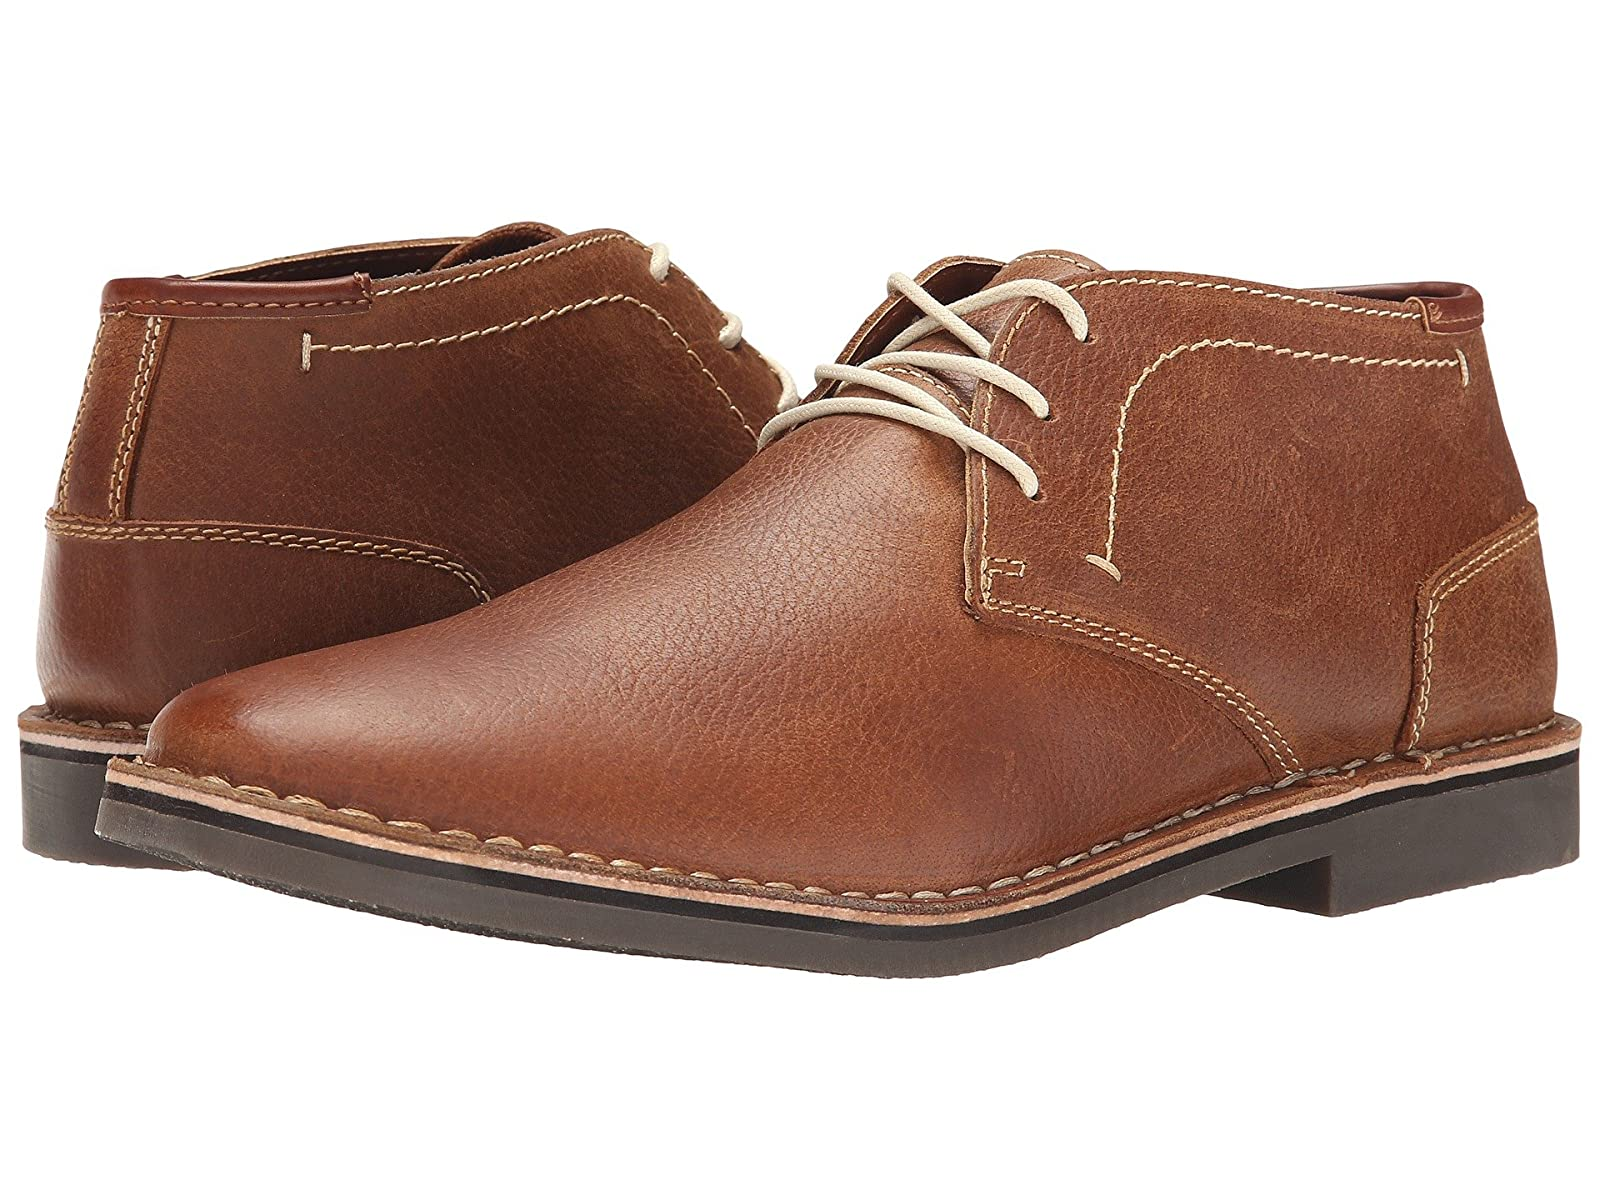 Kenneth Cole Reaction Desert Sun PBAffordable and distinctive shoes